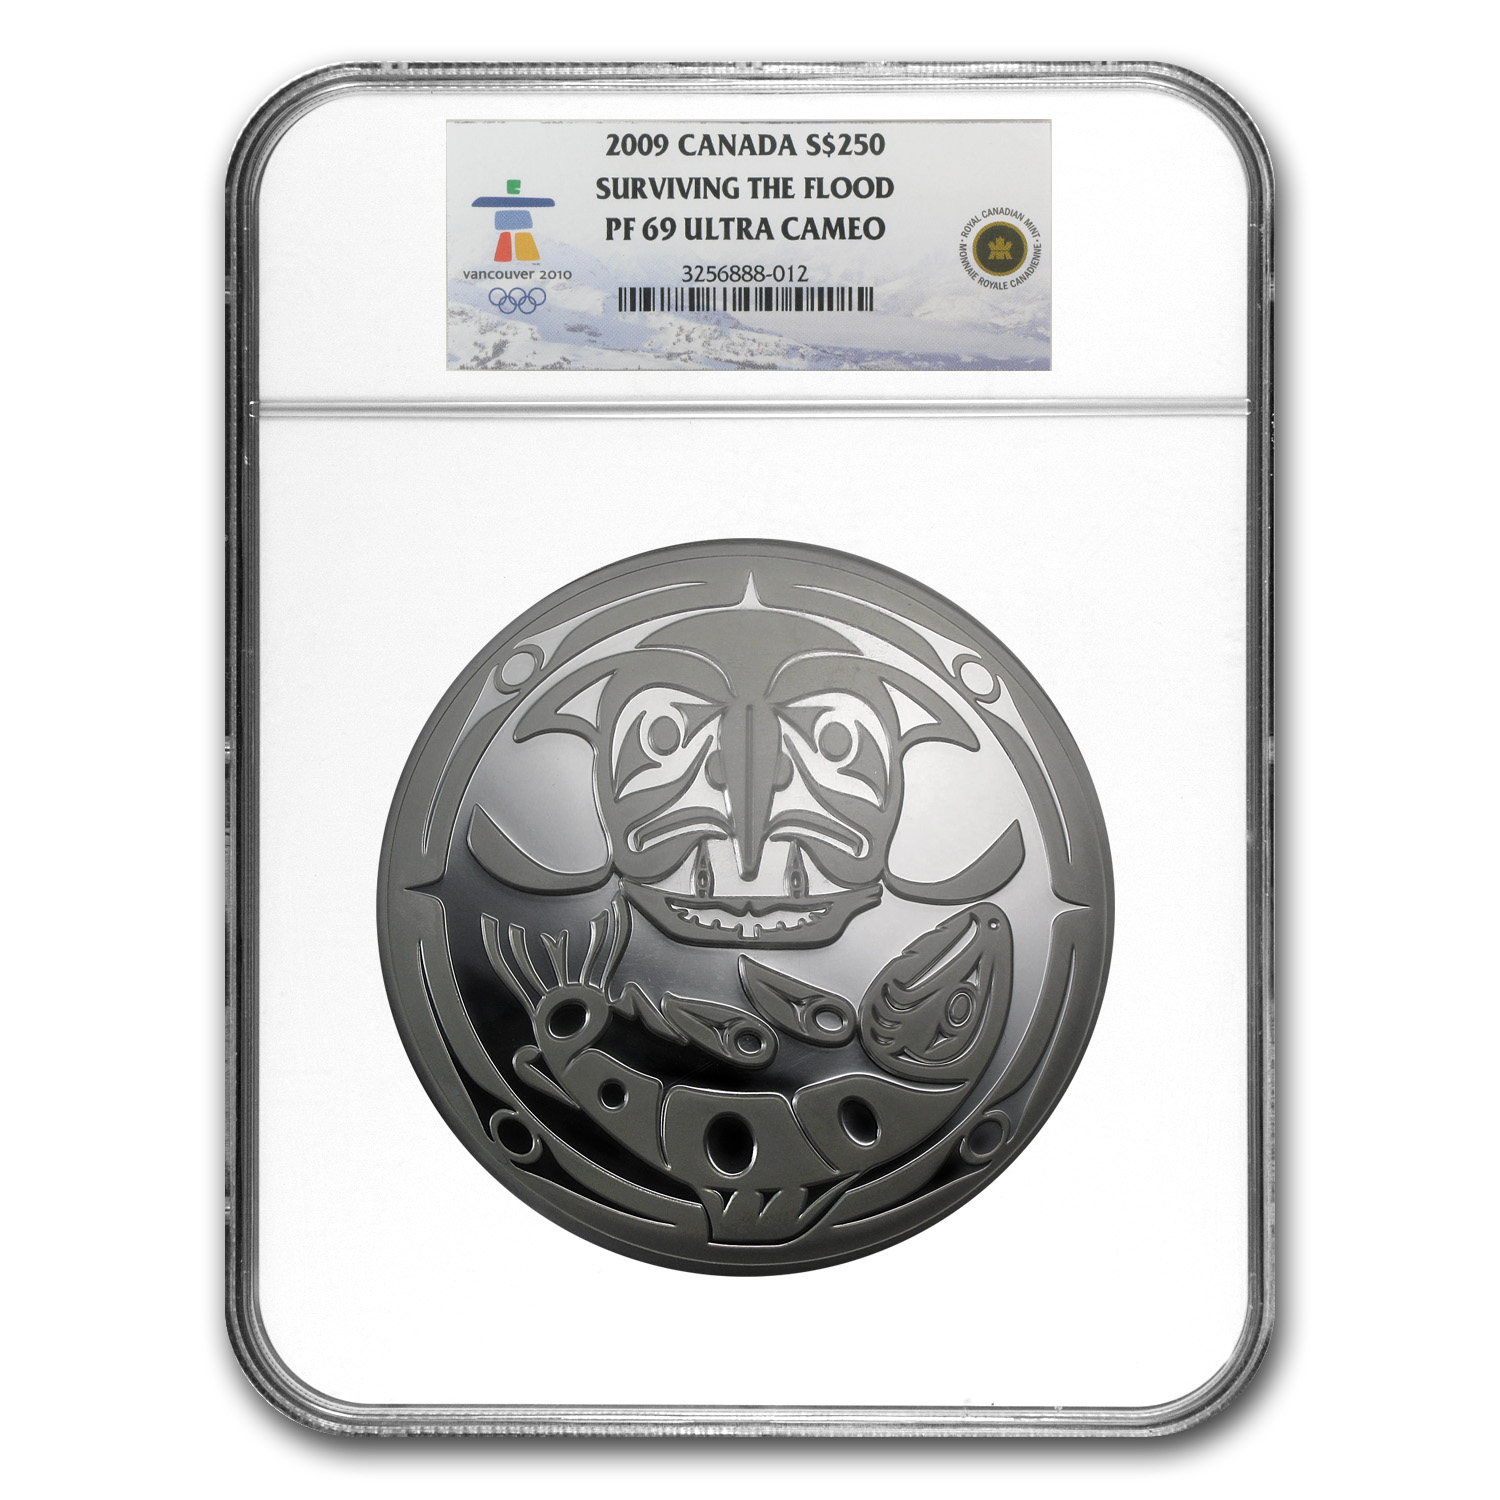 2009 1 Kilo Silver Canadian $250 Surviving the Flood PF-69 NGC